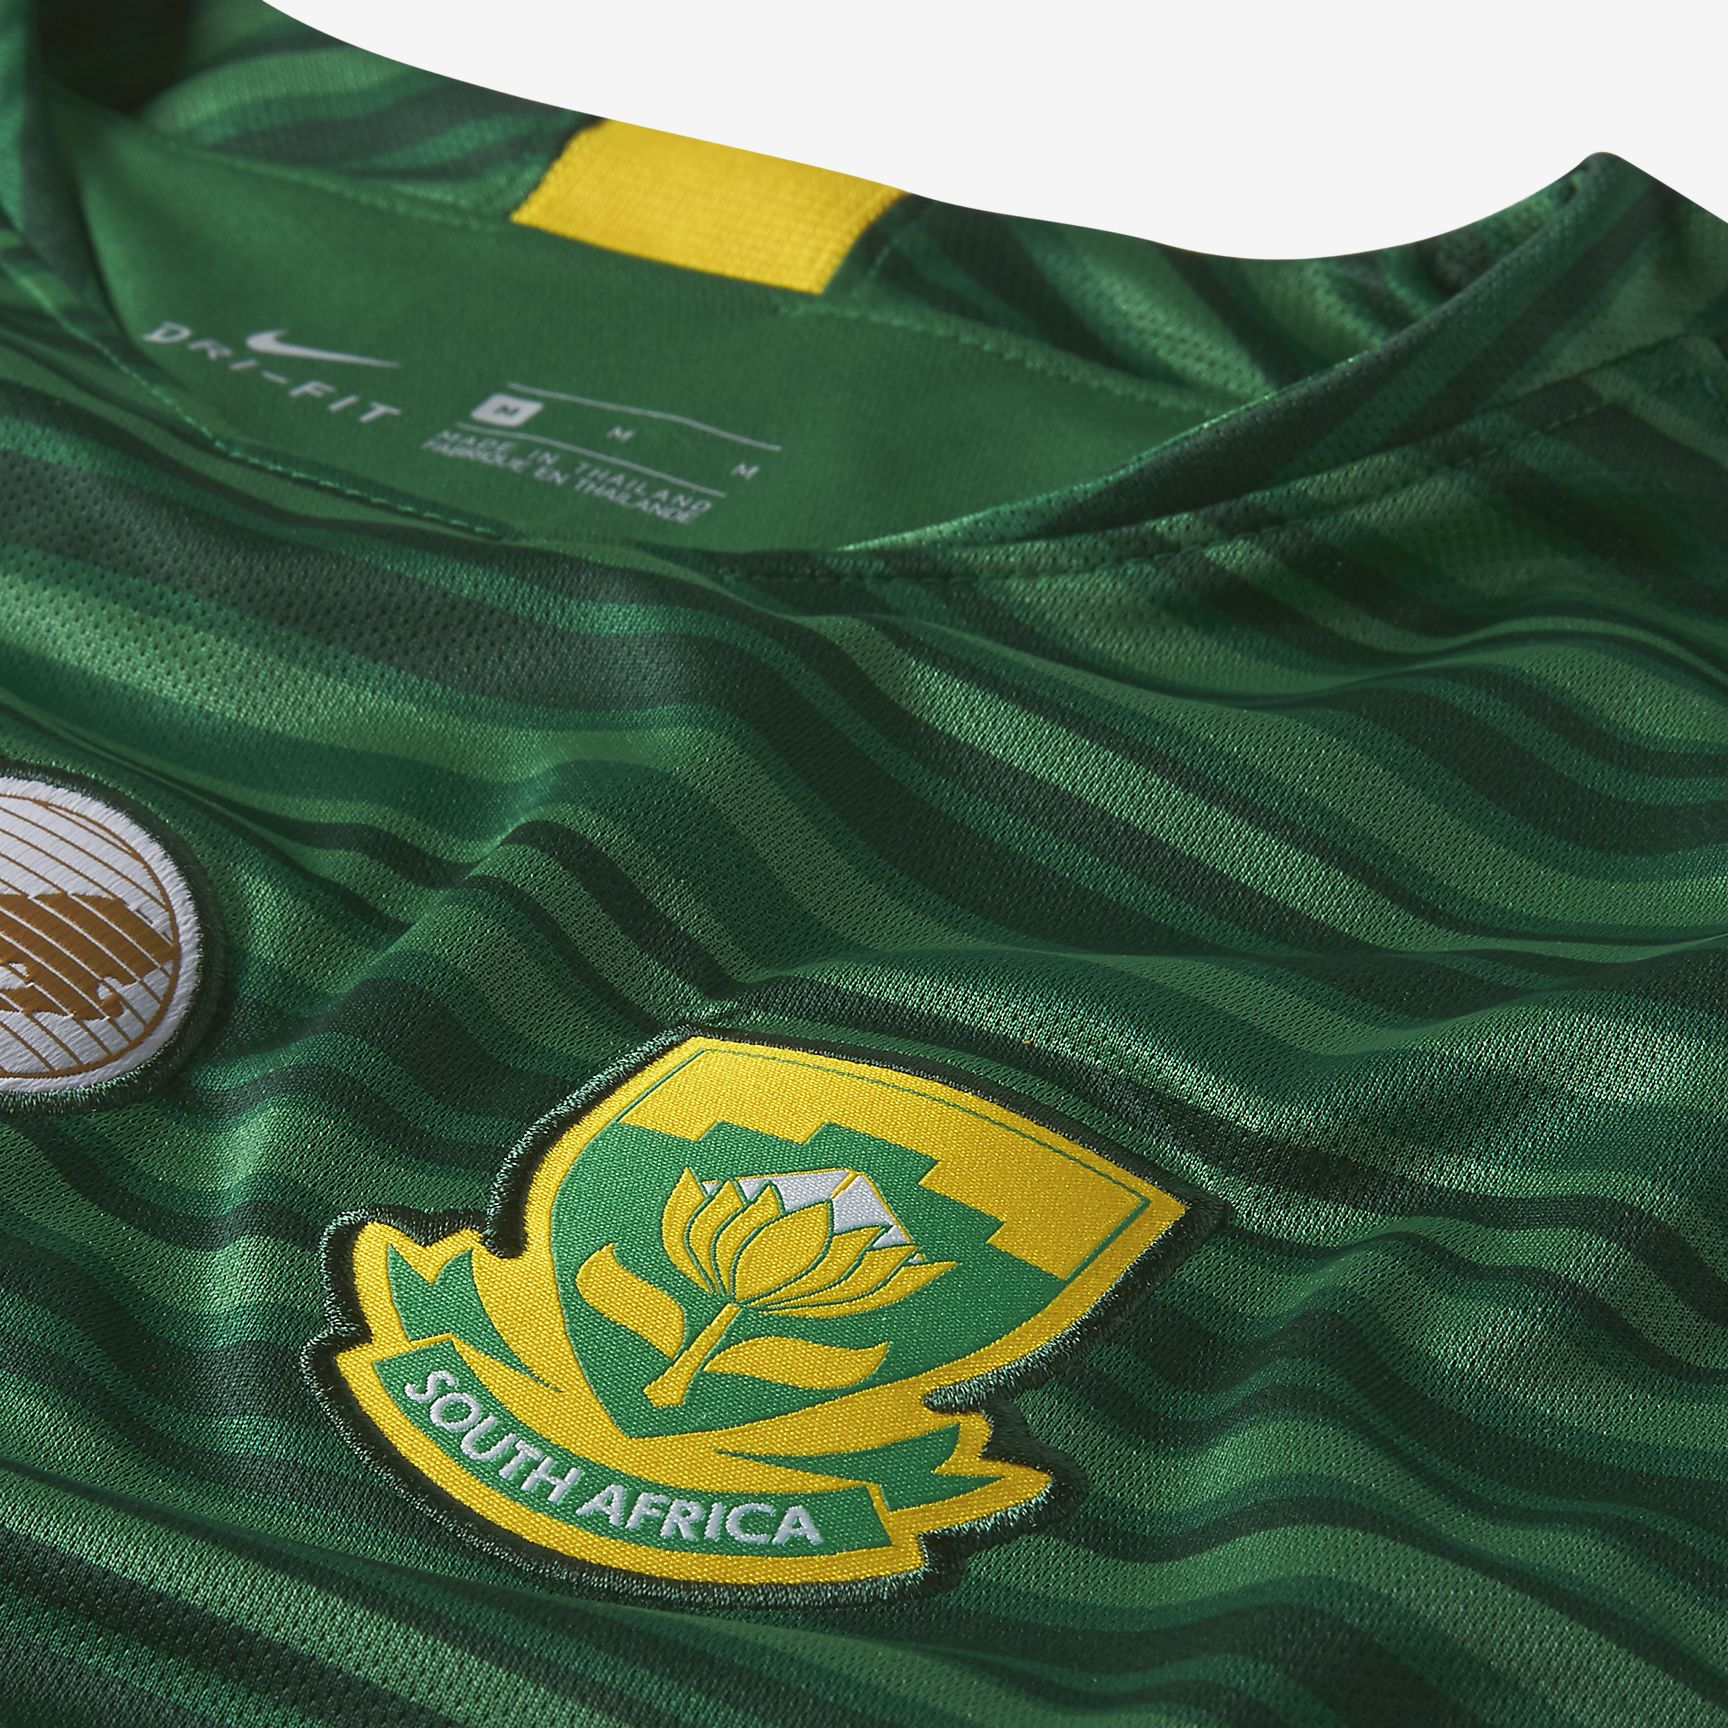 South Africa Away Kit, Jersey Nike 2018, Matthew Wolff, Bafana Bafana, Tour Yellow, Gorge Green, Soccer Jersey